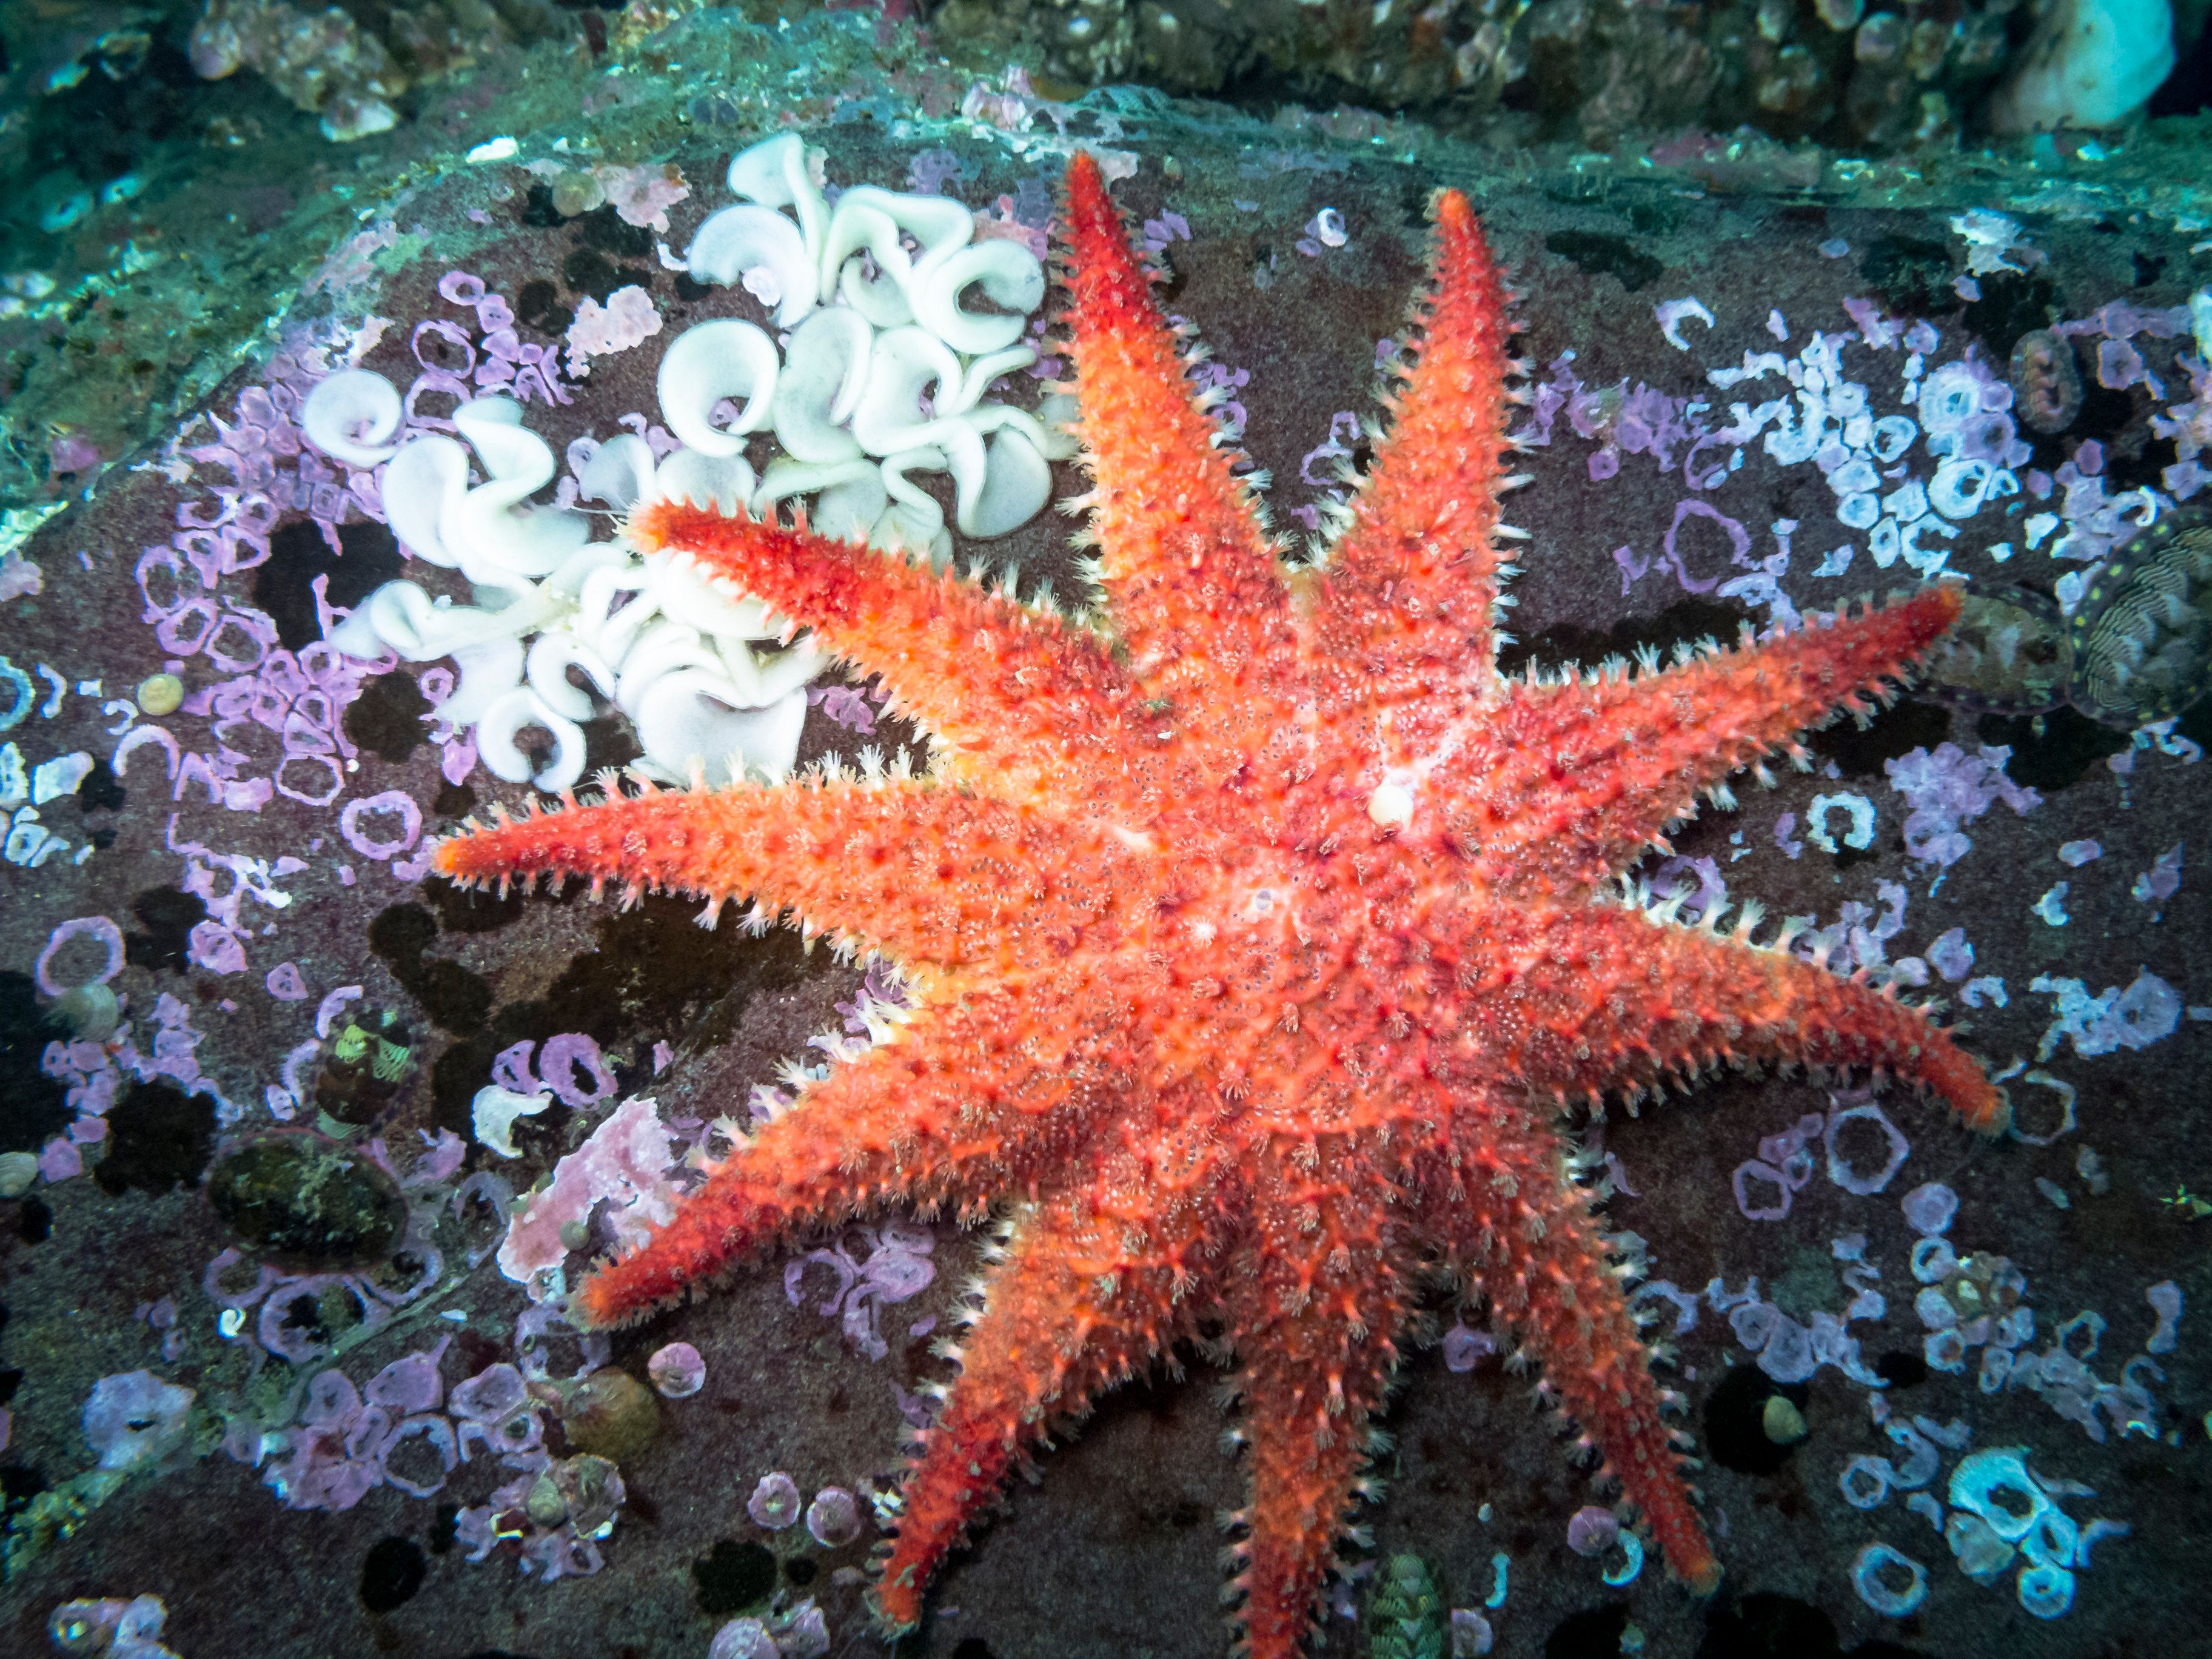 A vibrant star with many common names photographed in southern British Columbia at a depth of 30ft. Nudibranch eggs on top left of boulder as well.